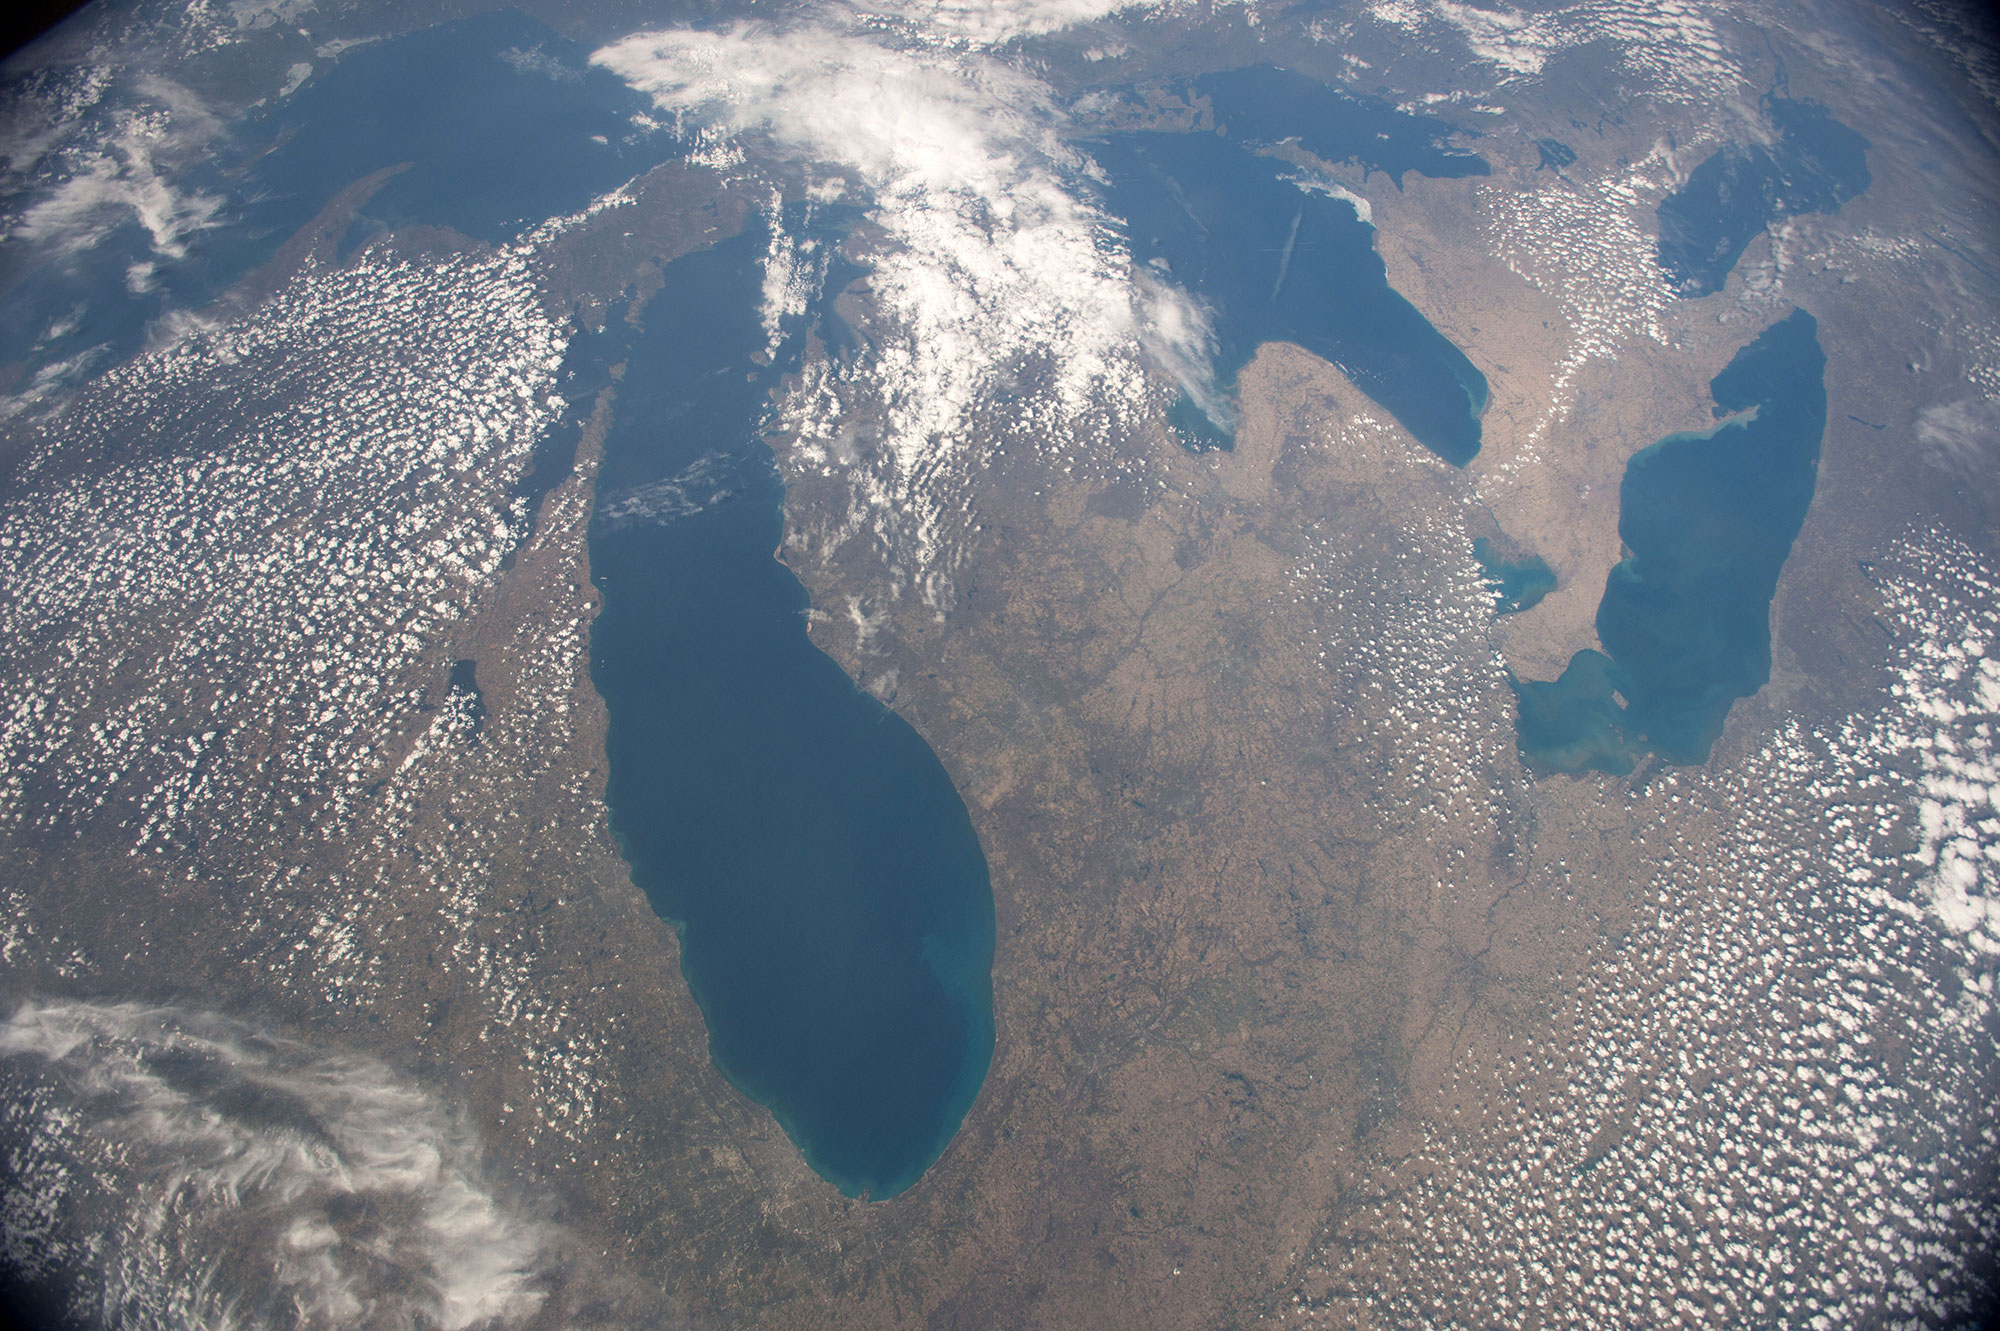 The Great Lakes as seen on the International Space Station on May 2, 2015. (Image by  NASA/Terry Virts )